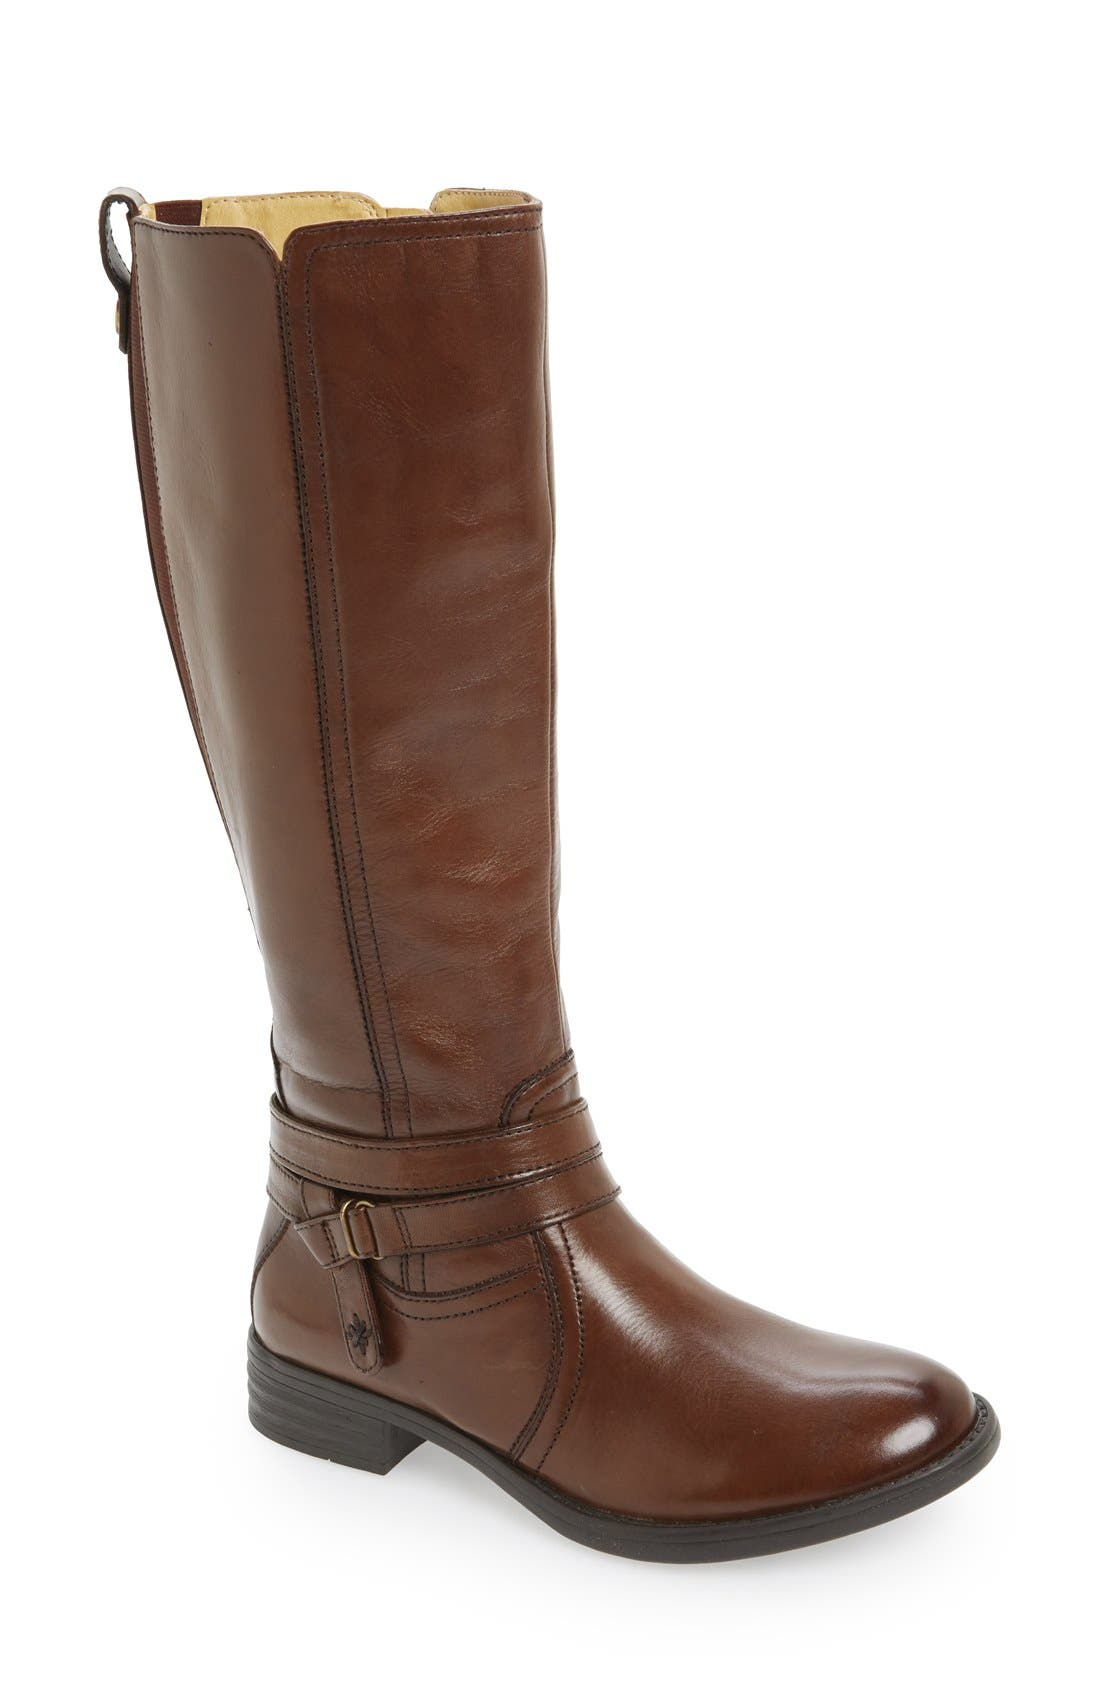 Alternate Image 1 Selected - Bussola 'Tracy' Round Toe Boot (Women)